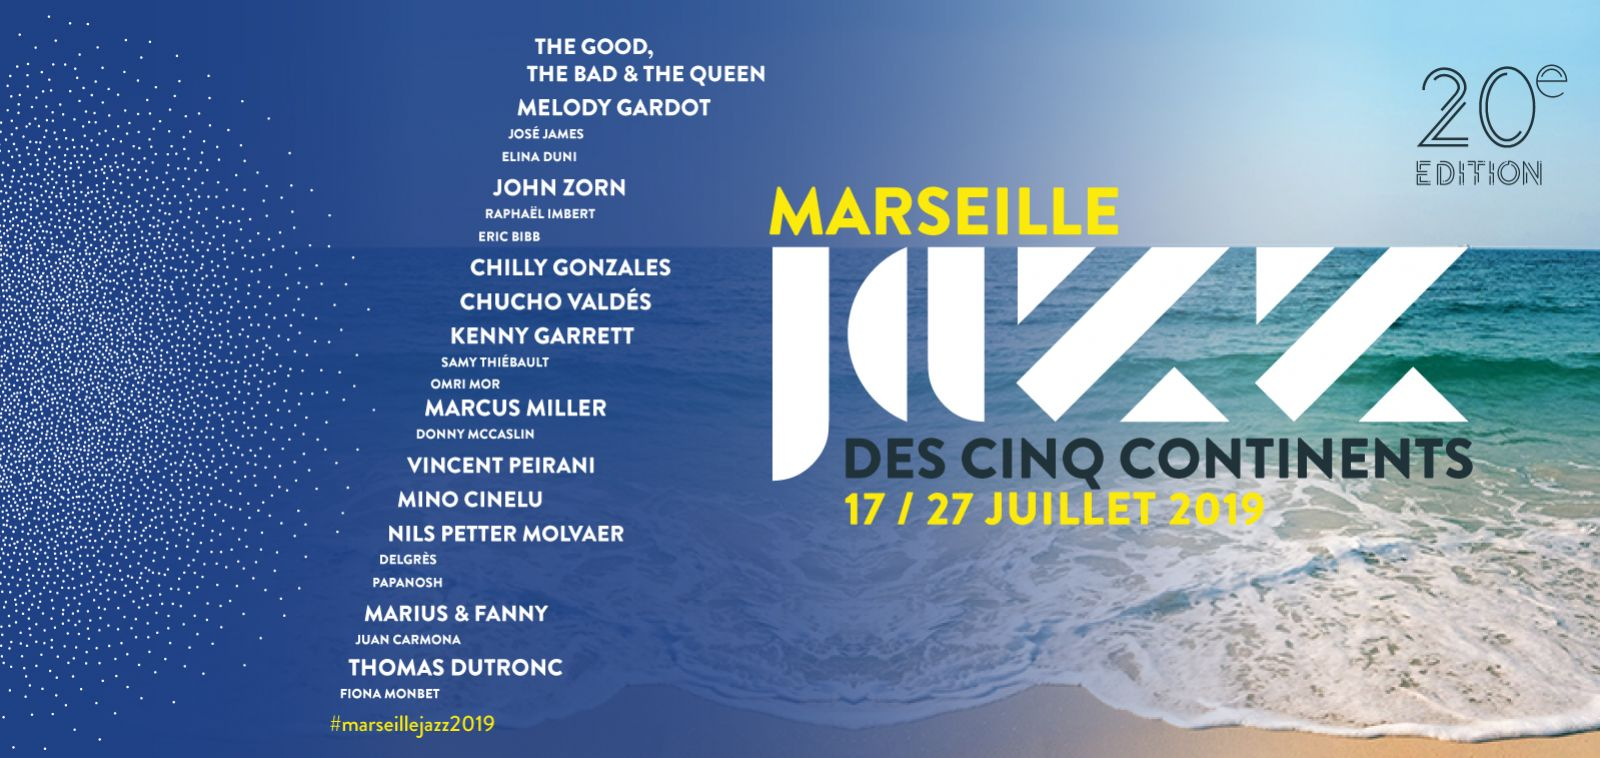 Marseille Jazz of the Five Continents 2019 - An impressive program for the 20th anniversary of the Festival